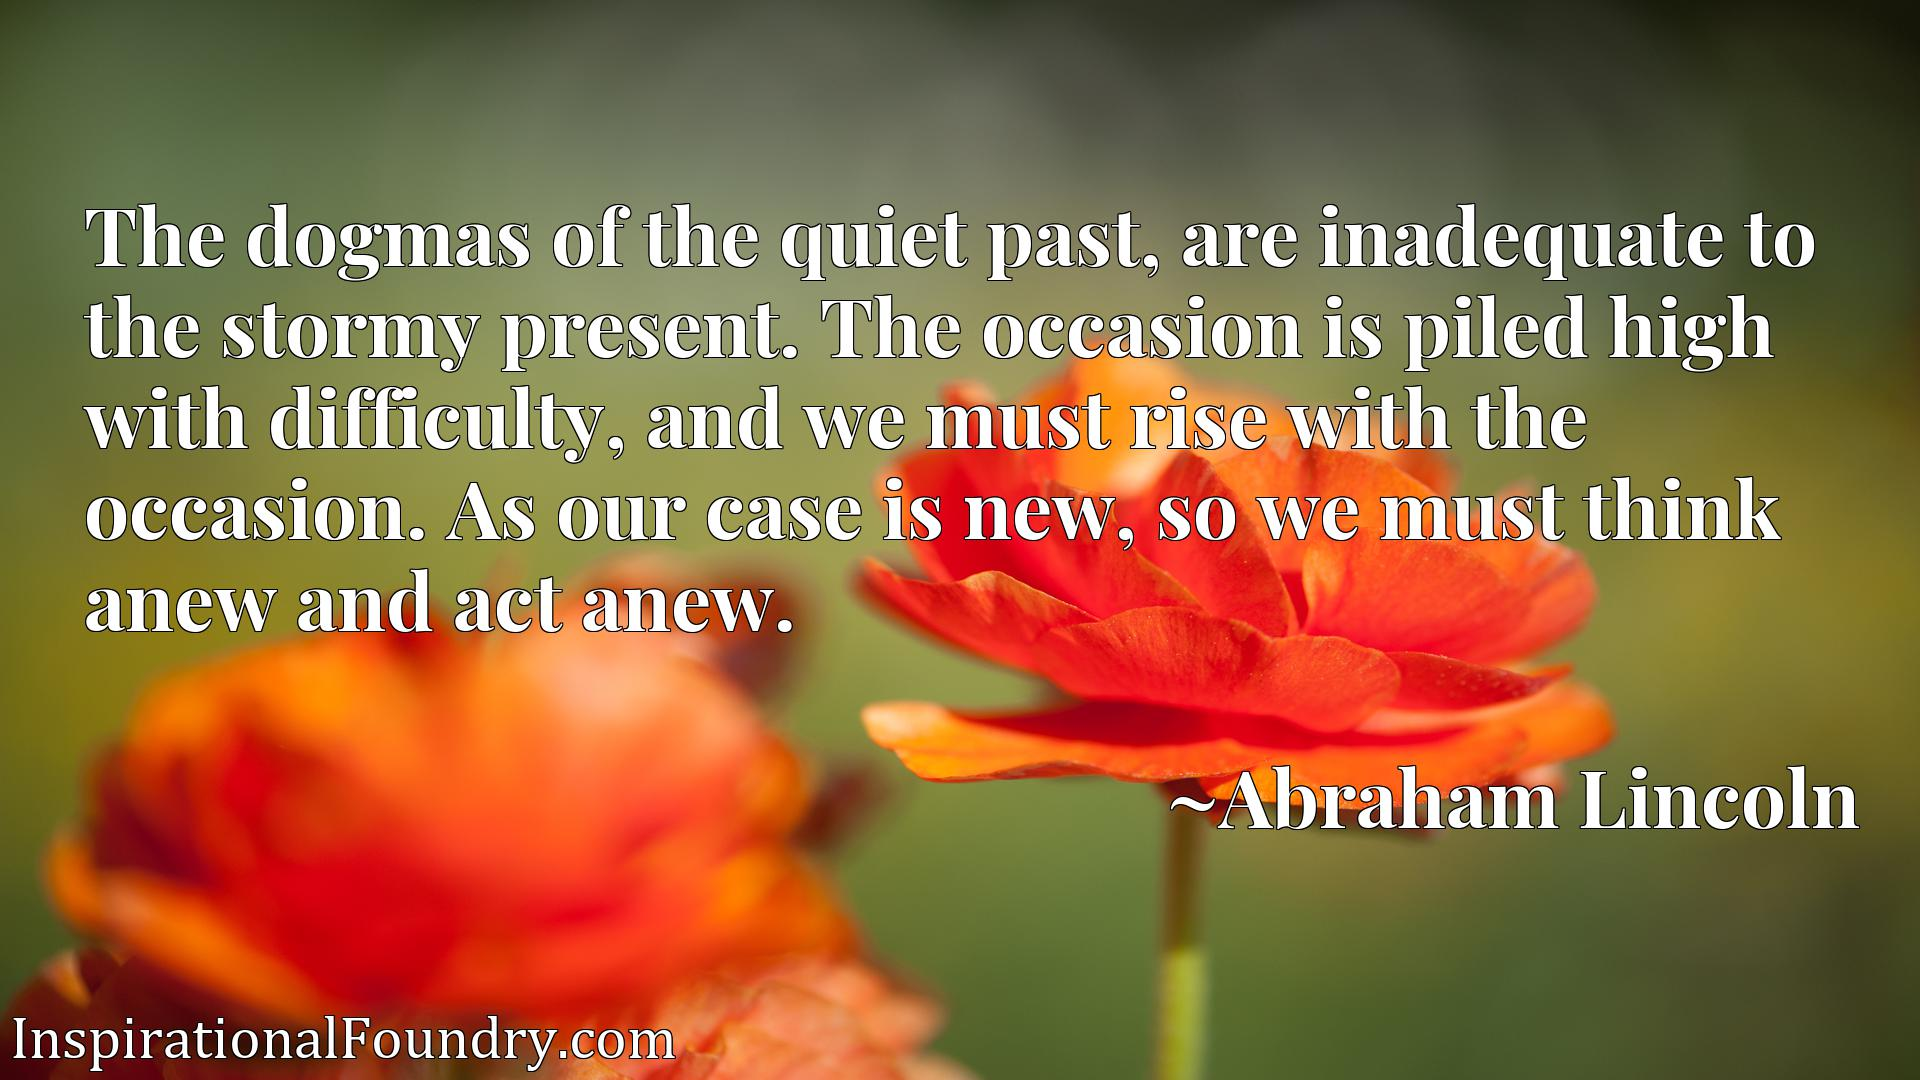 The dogmas of the quiet past, are inadequate to the stormy present. The occasion is piled high with difficulty, and we must rise with the occasion. As our case is new, so we must think anew and act anew.